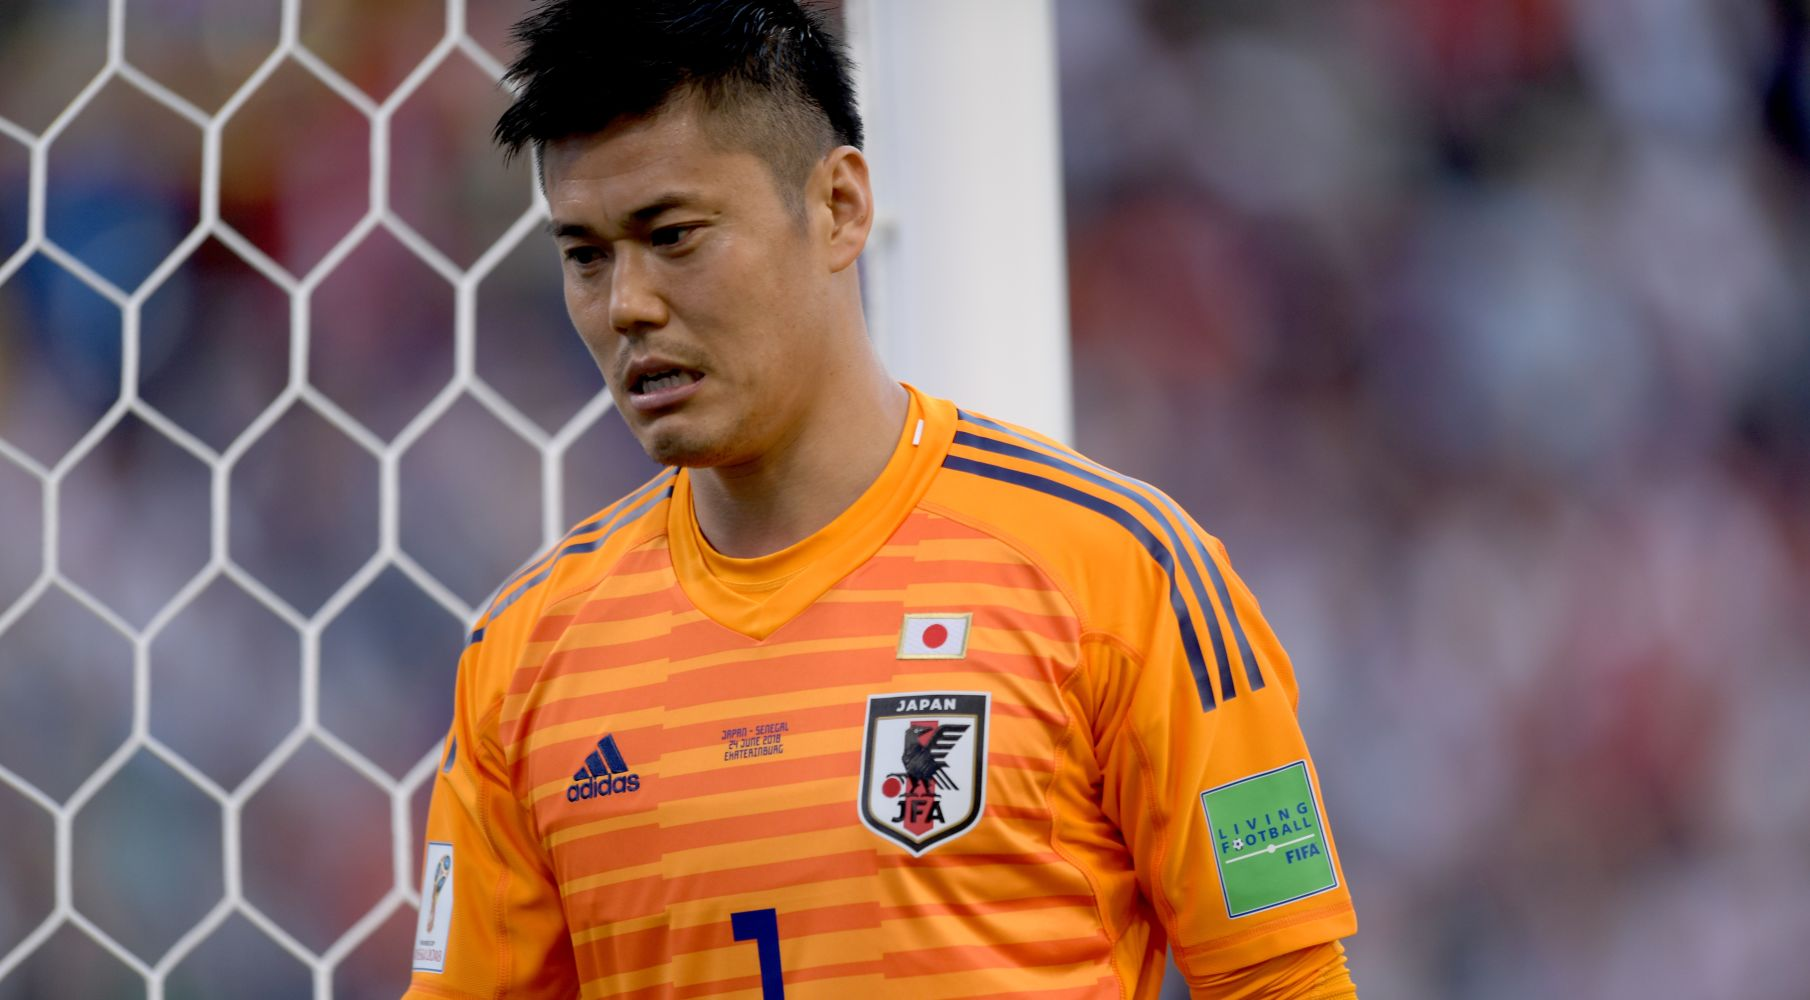 Veteran goalkeeper Eiji Kawashima could be dropped after committing crucial errors